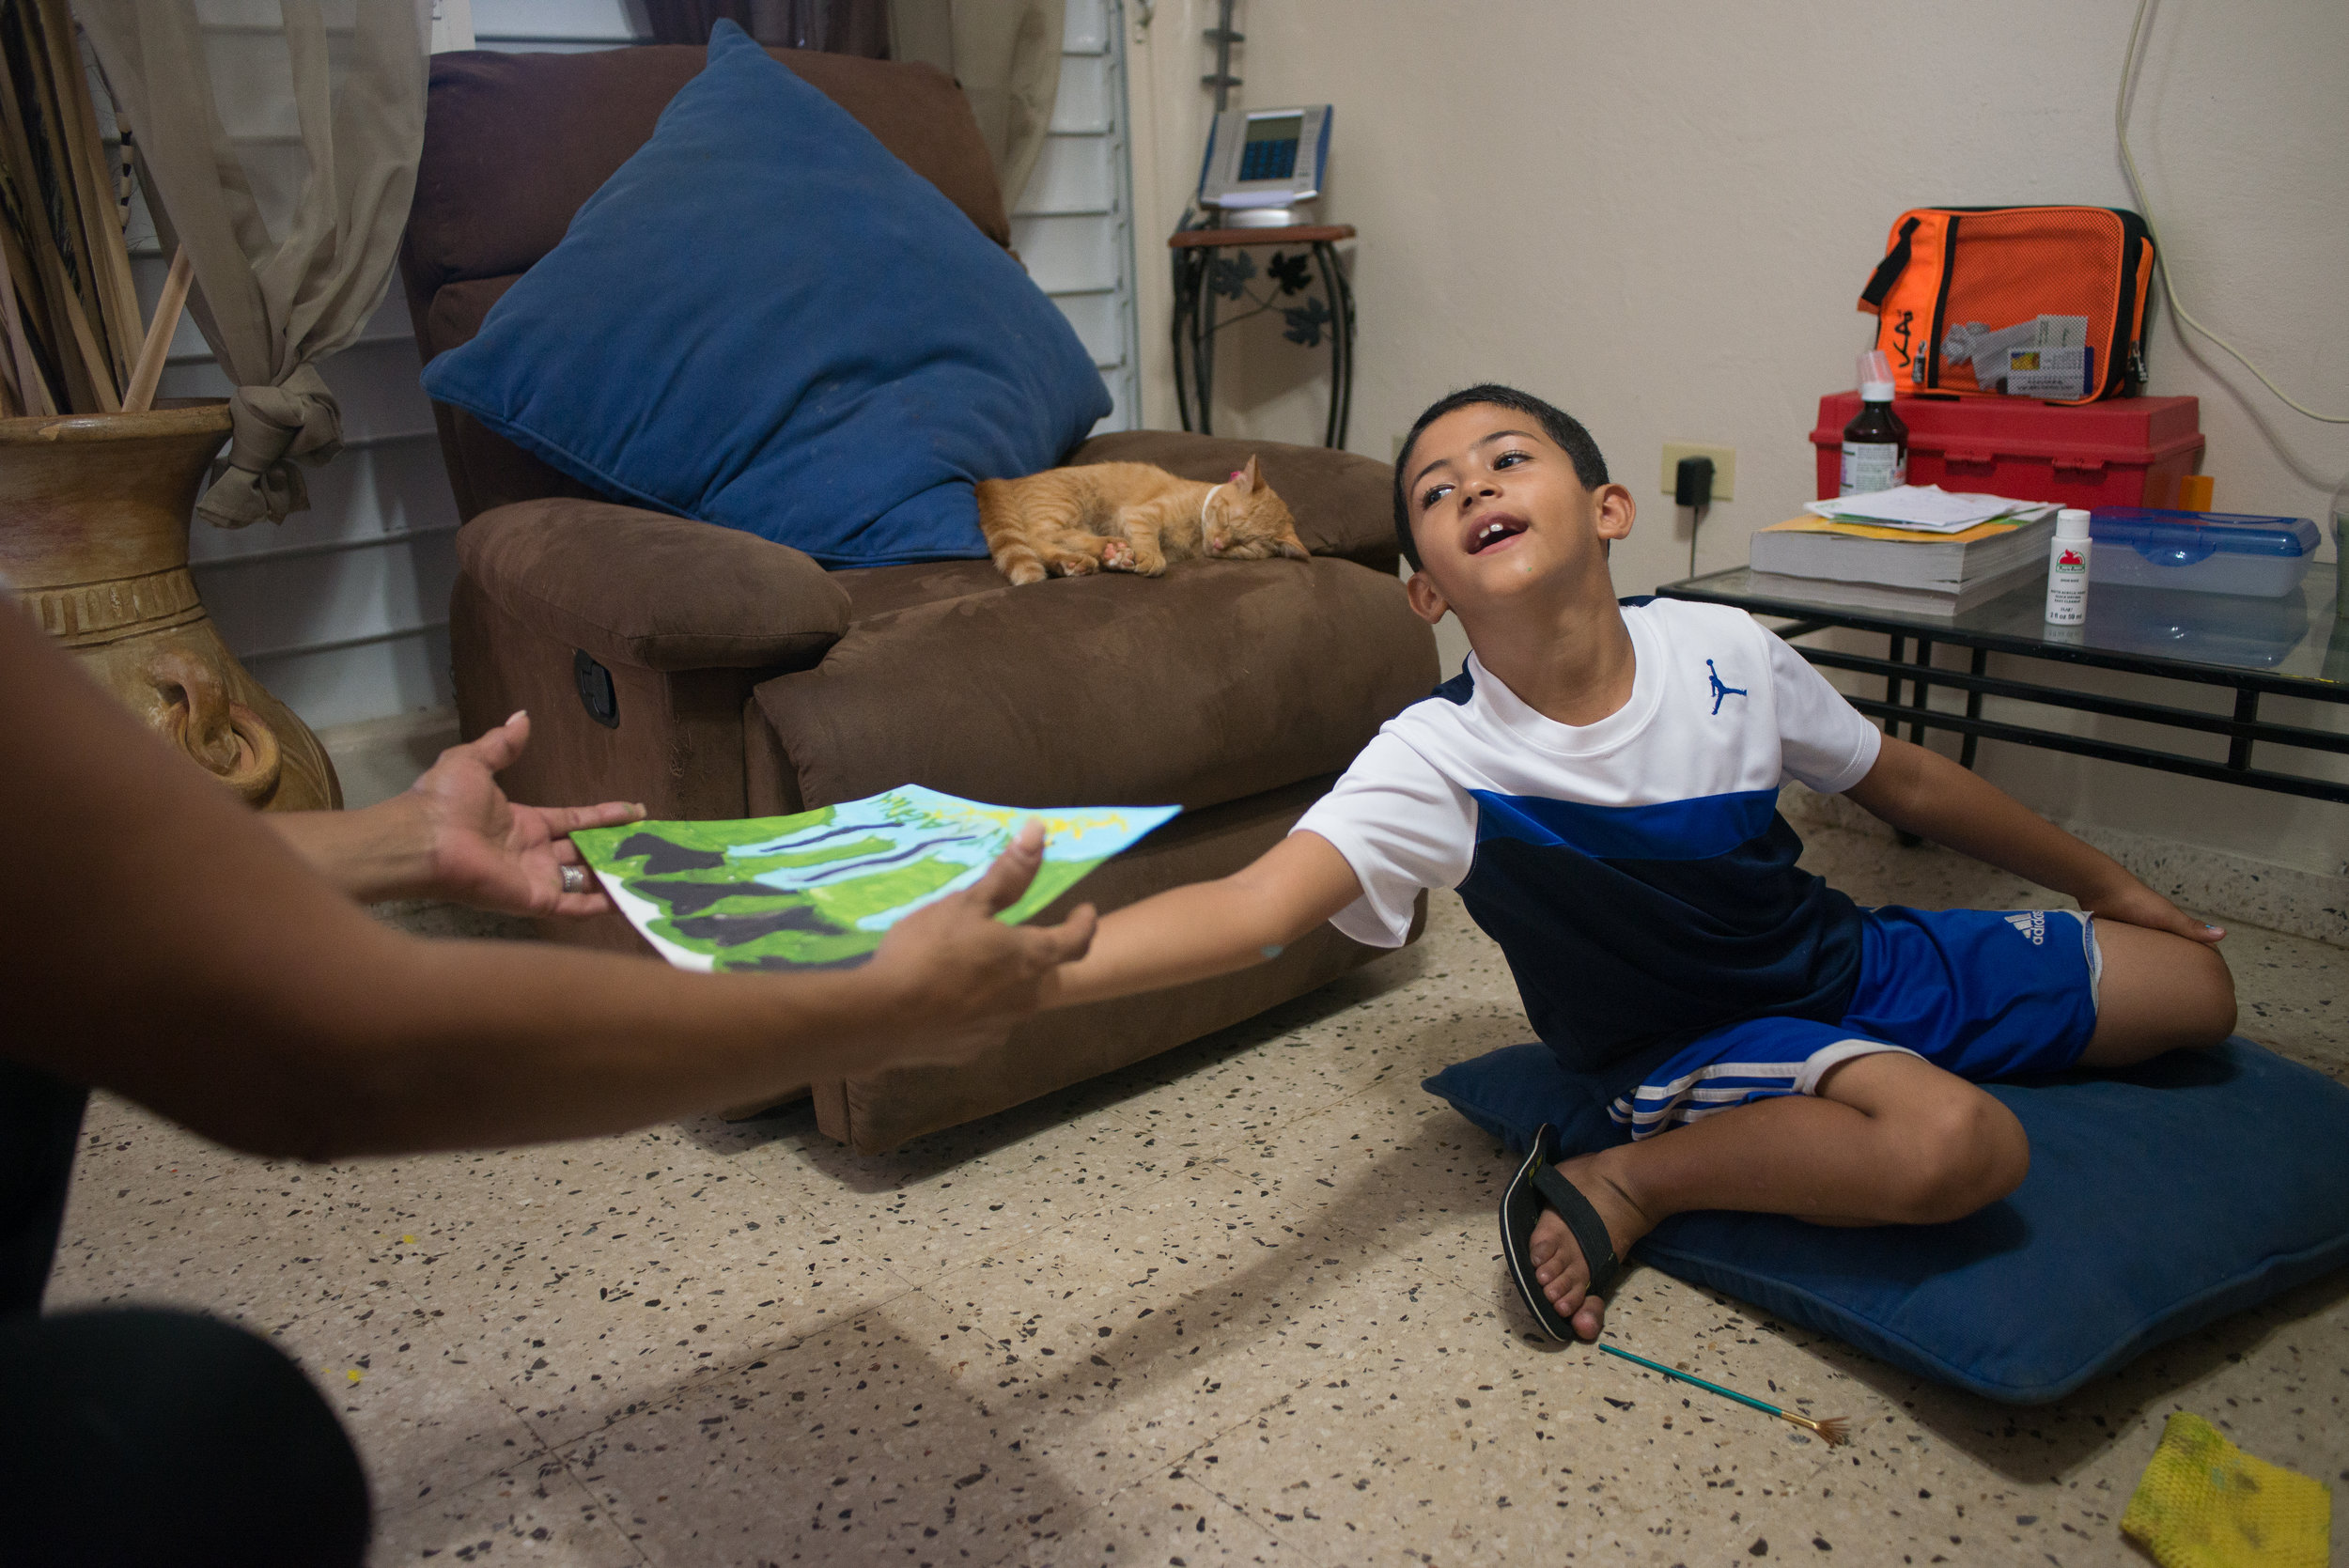 6/9/18 – Bayamón, Puerto Rico – Jayson Grau is a student in the second grade at Aurelio Perez Martinez, one of the schools set to close before the Fall. He tried another school before and had to repeat 1st grade, but has enjoyed Aurelio and thrived there, according to his mother and grandmother.